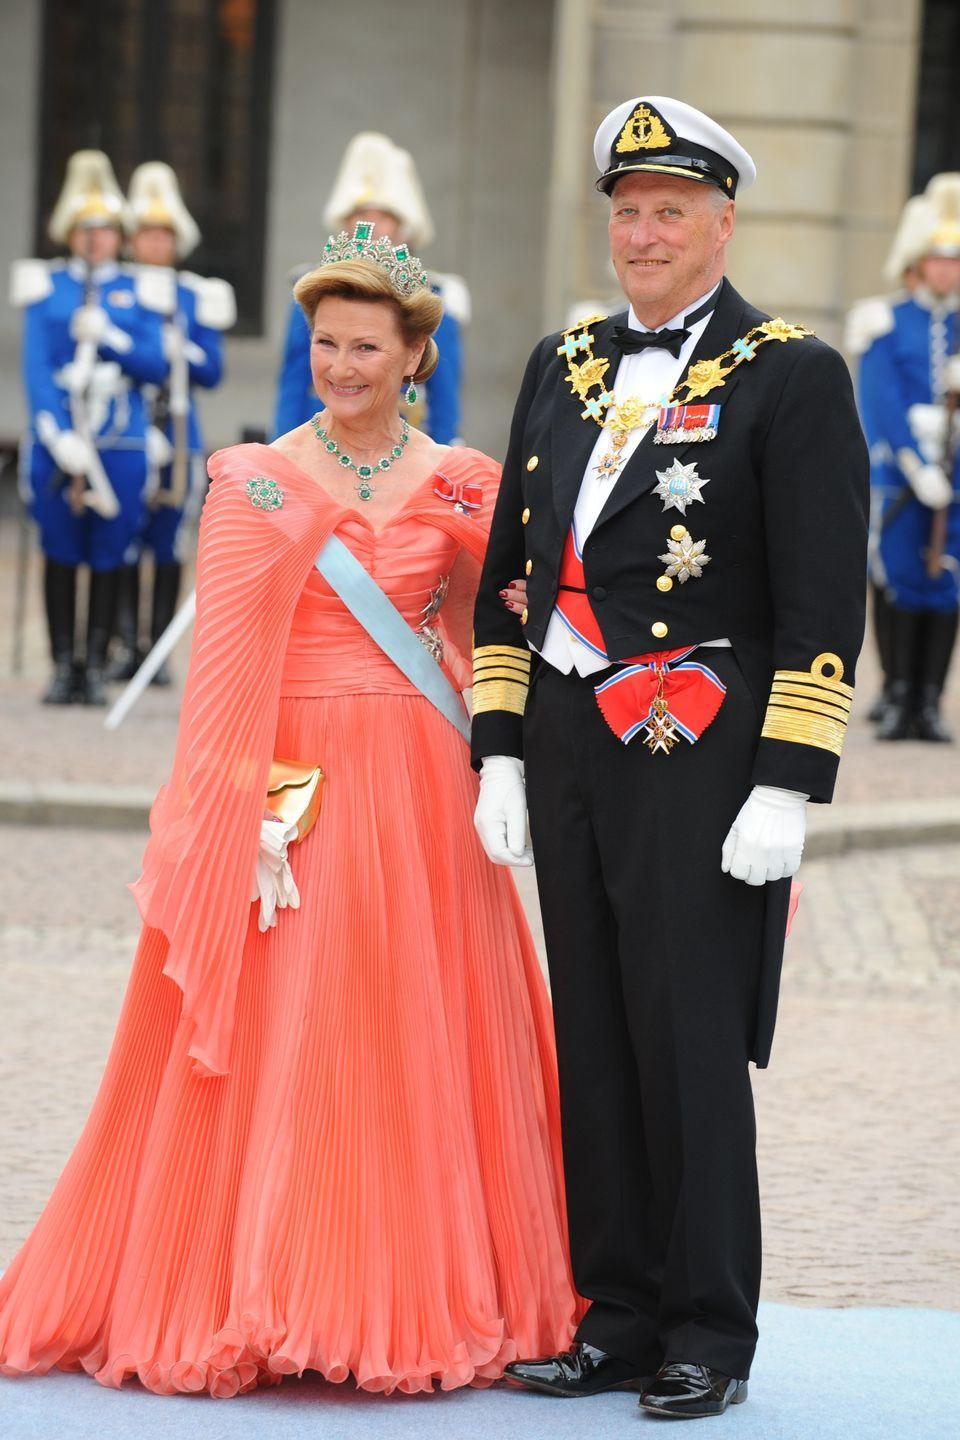 <p>Queen Sonja was the daughter of a merchant who married the future King Harald V of Norway in 1968. At first, Harald's father was against the marriage because she was a commoner, but fast-forward 50 years, and the King and Queen still rule Norway. </p>